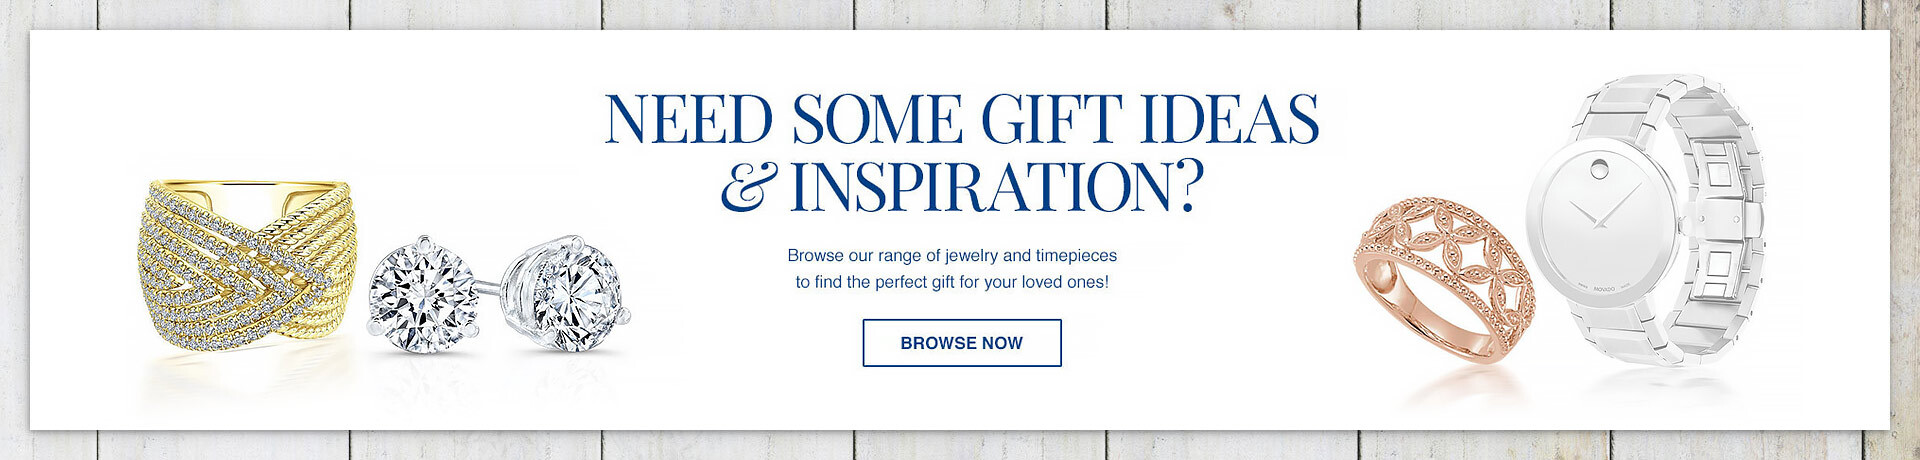 Jewelry Gift Idea Banner